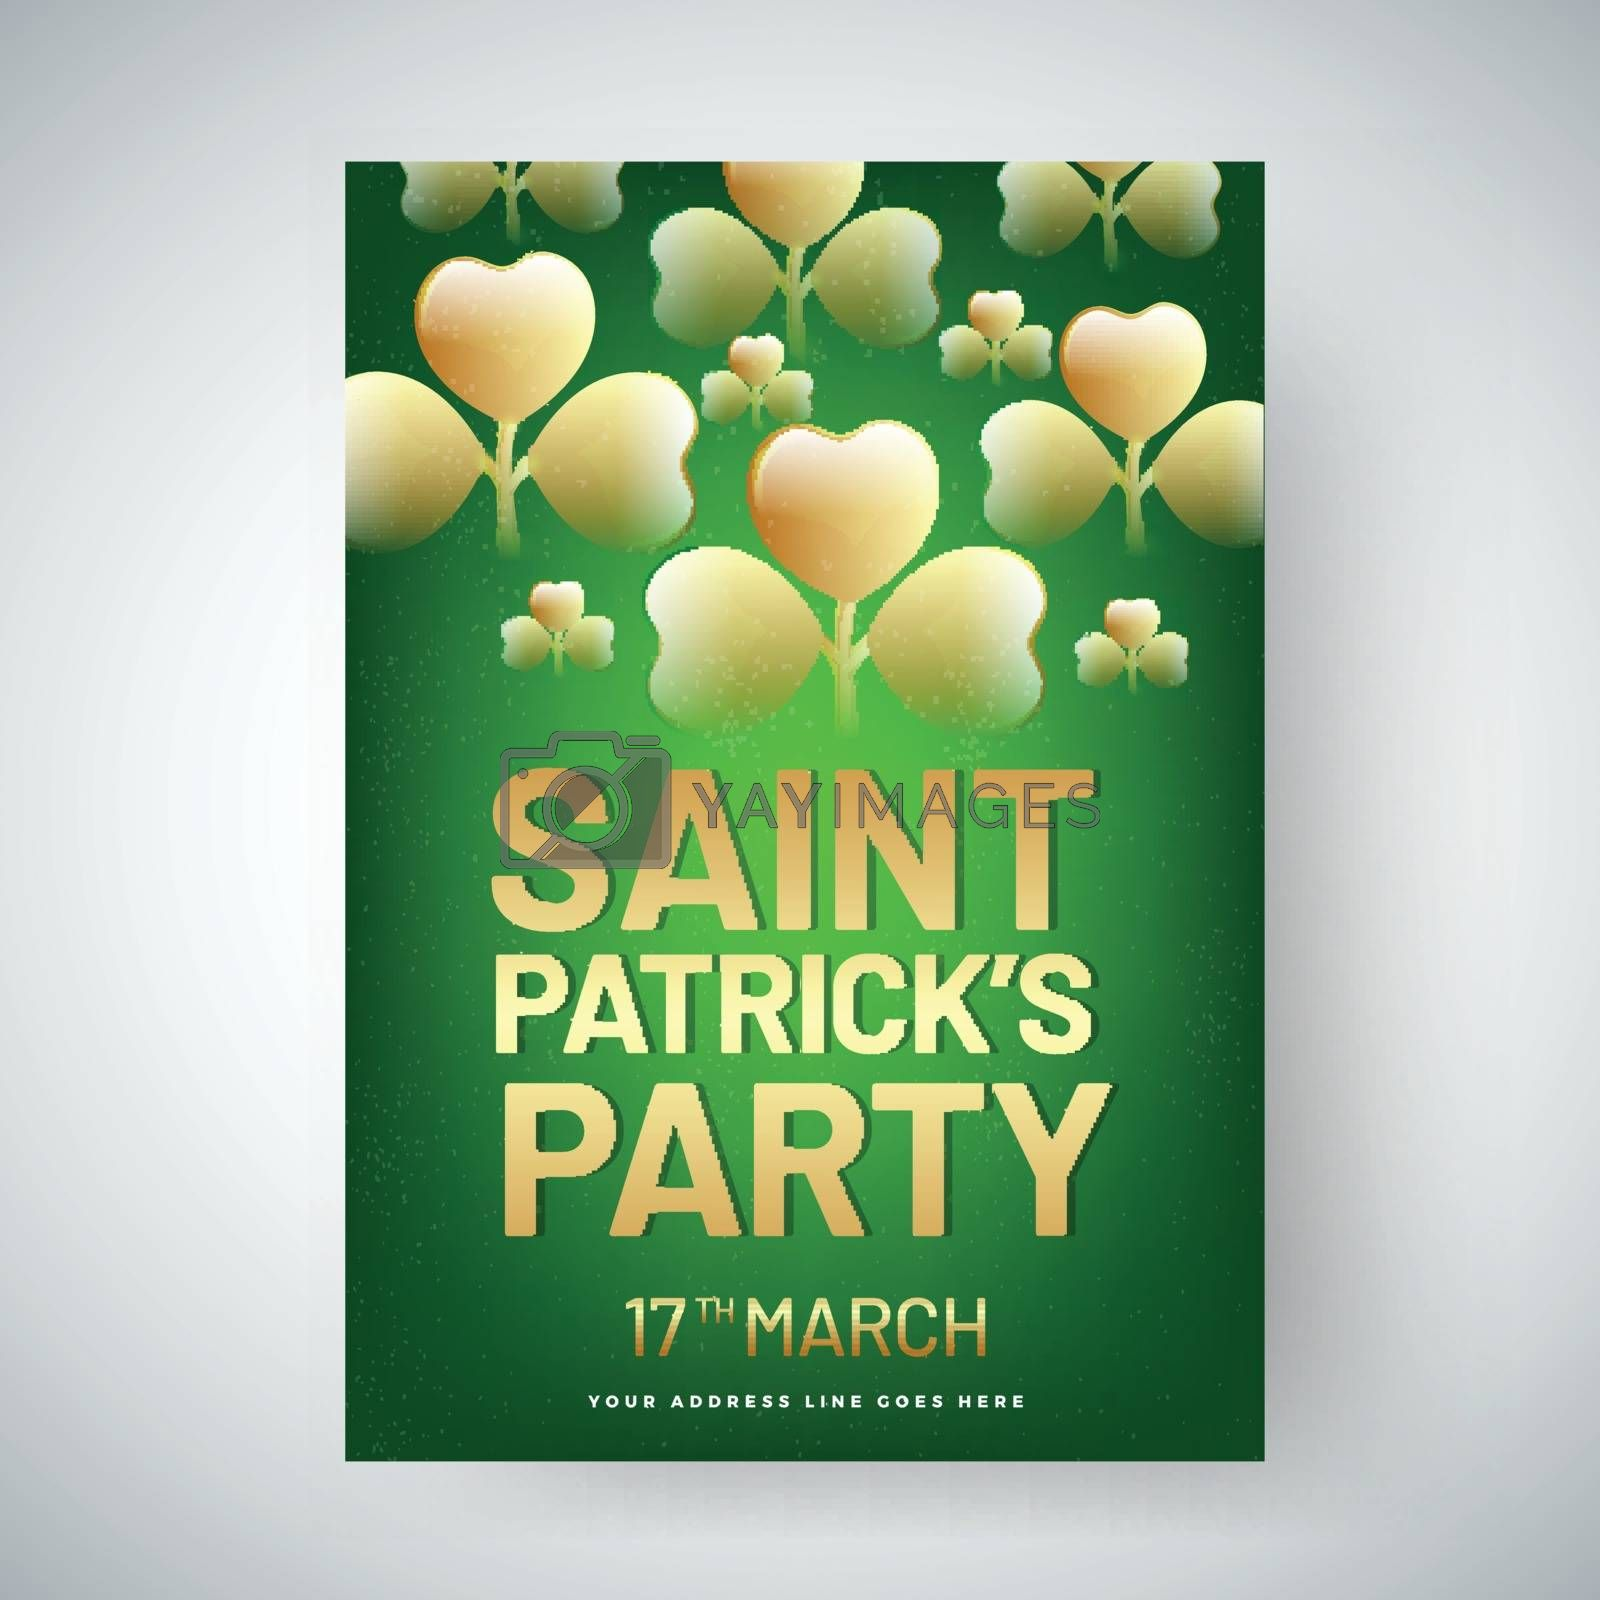 Royalty free image of Golden text Saint Patrick's Day with glossy clover leaves decora by aispl